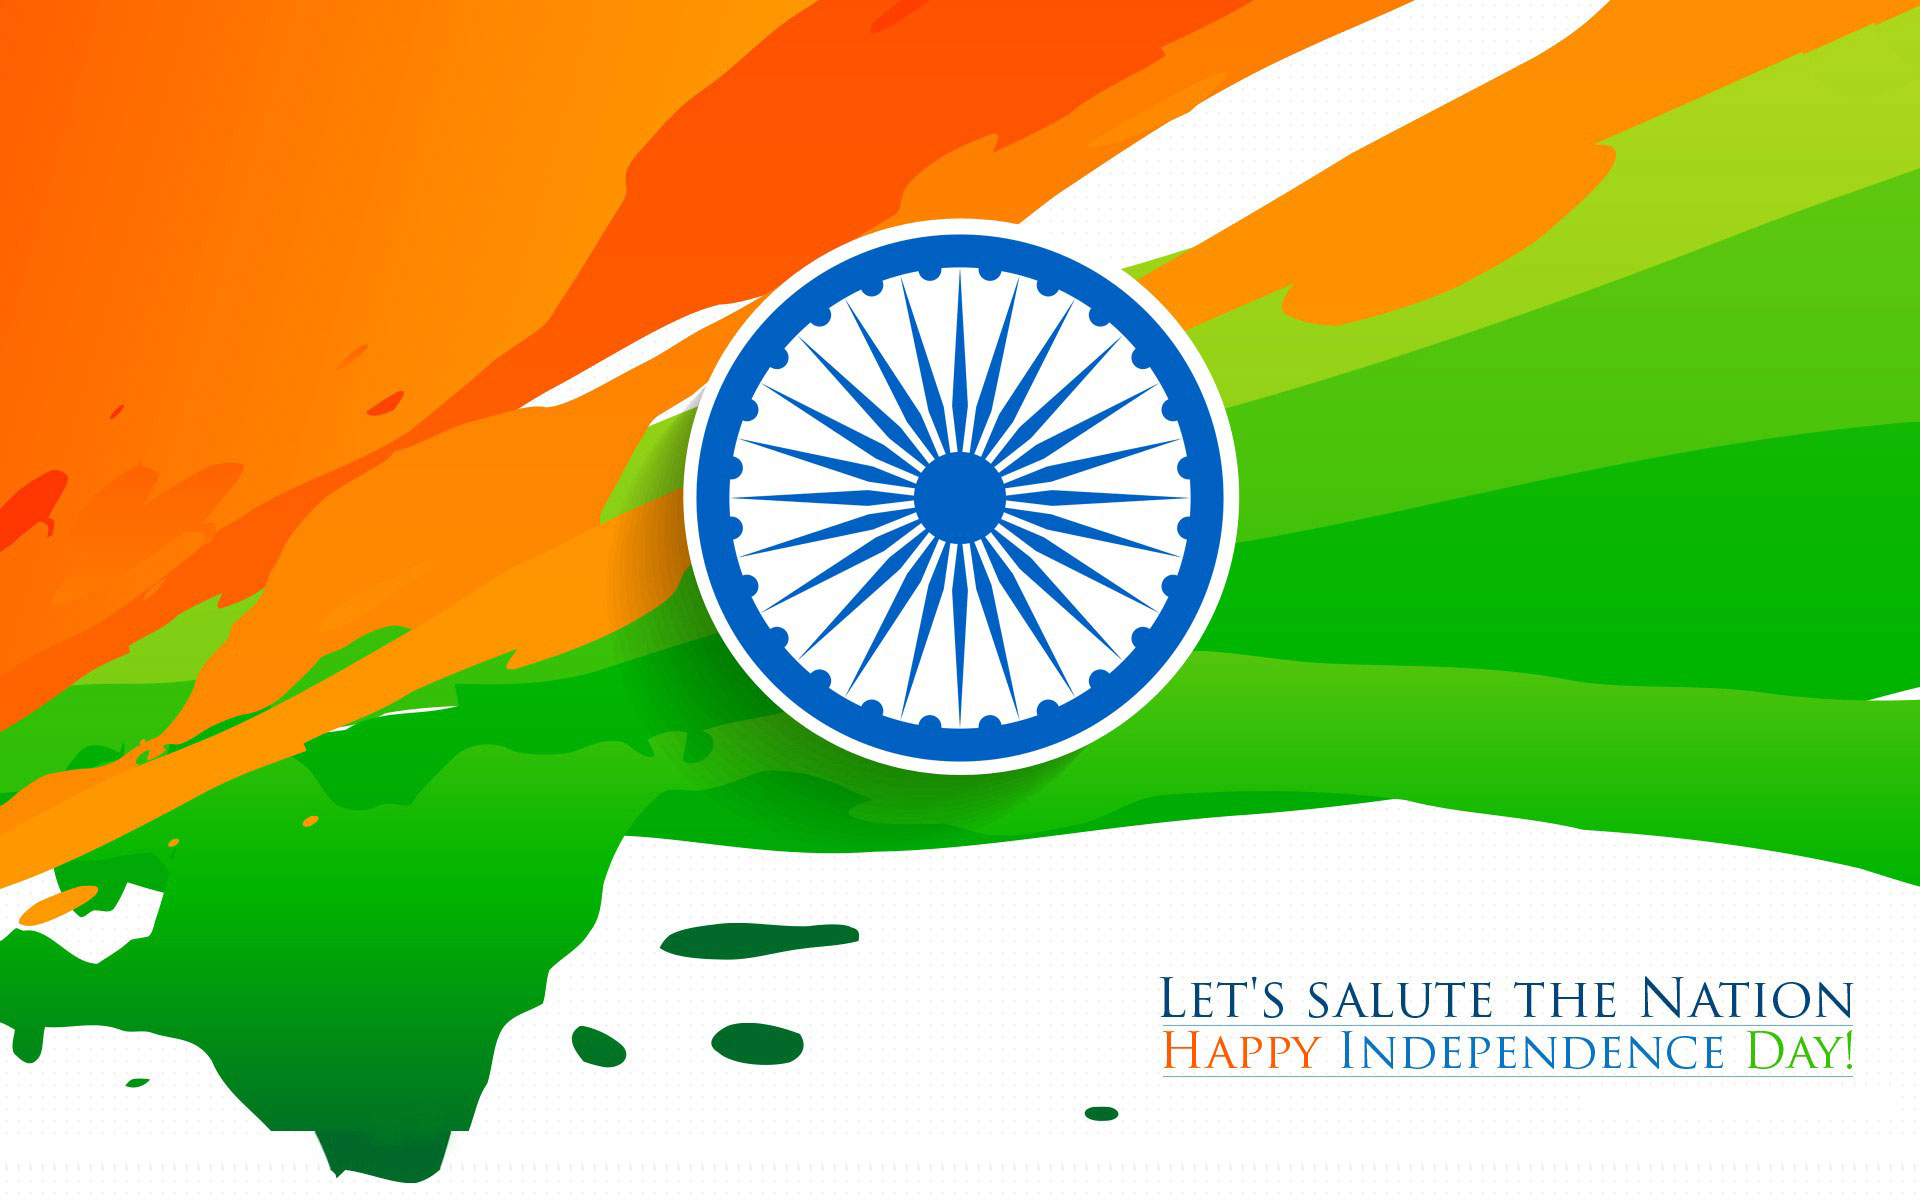 Happy Independence Day Indian Flag Tricolor HD Wallpaper